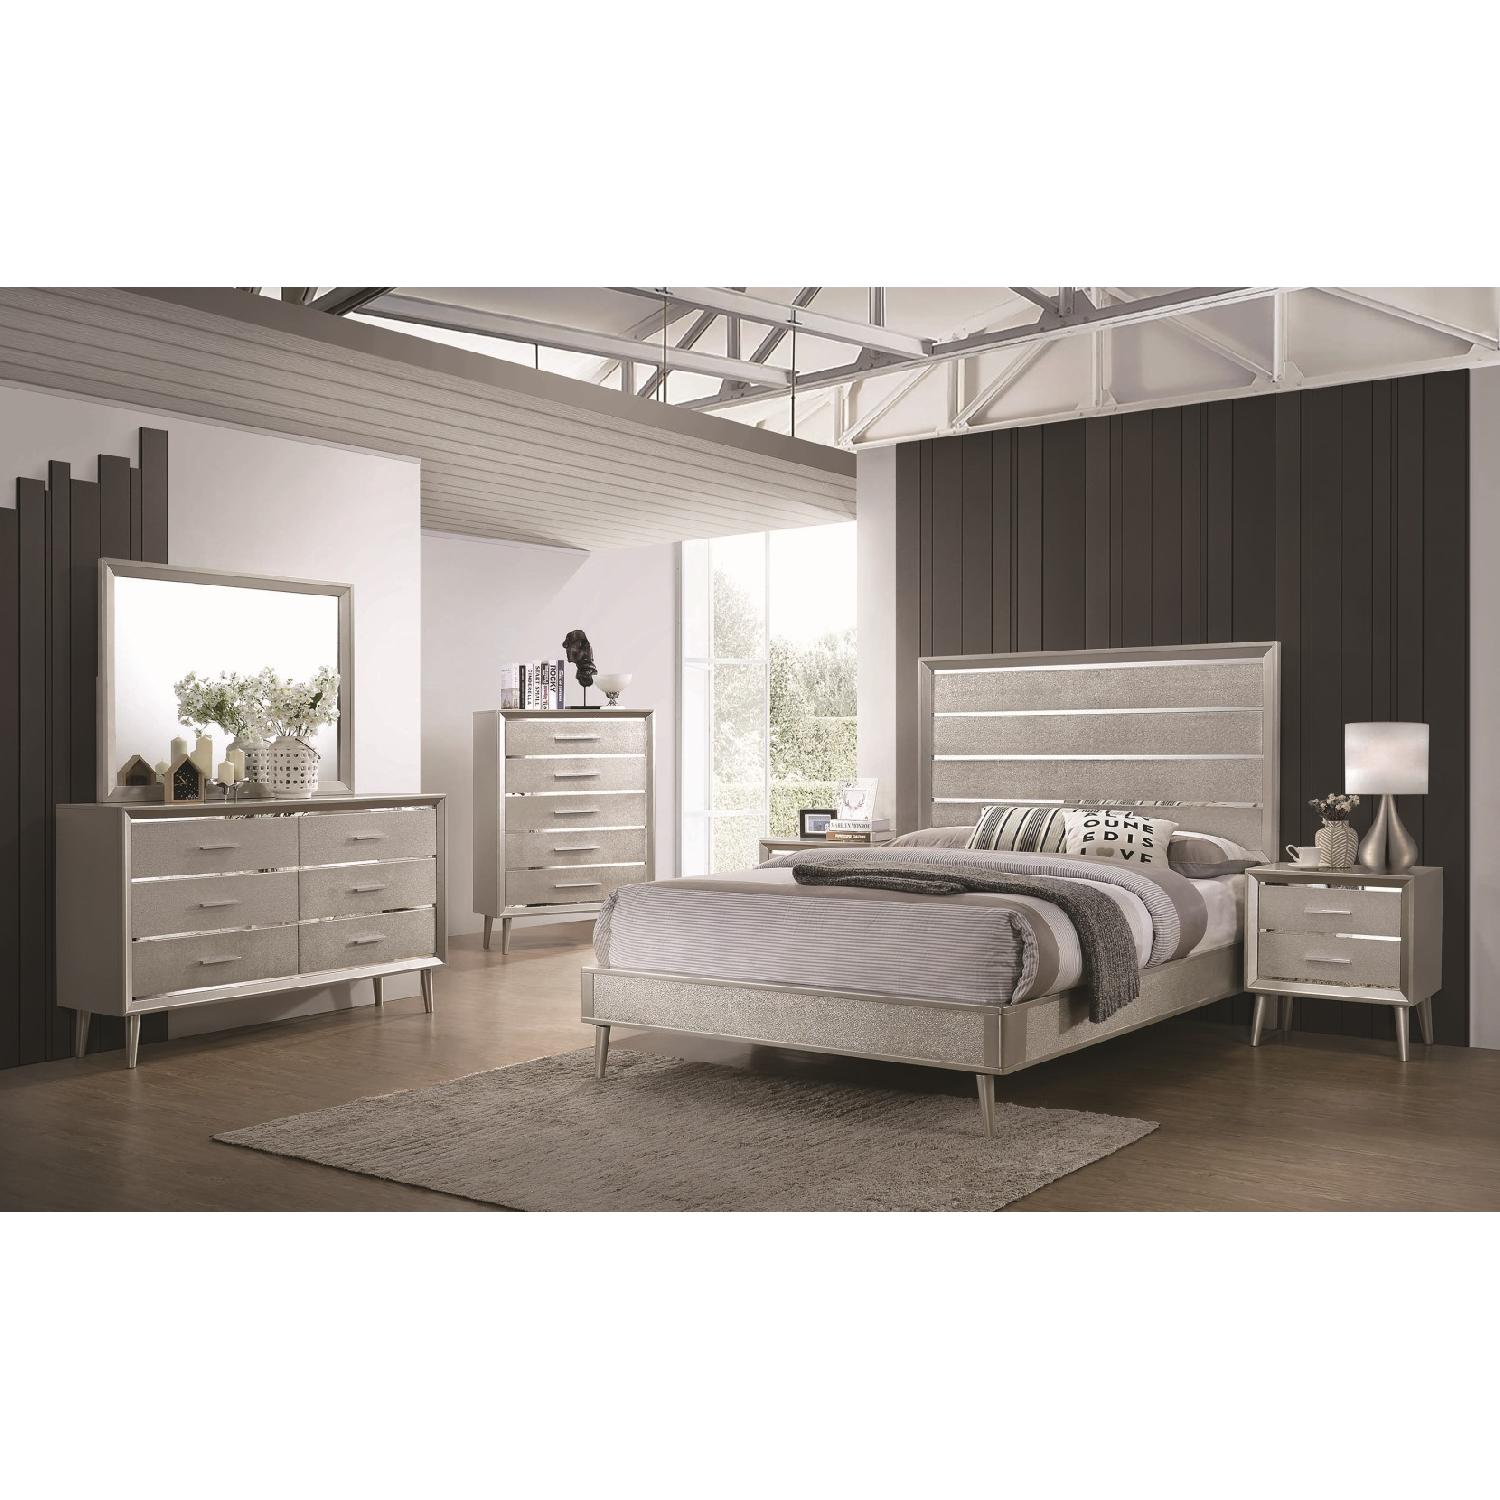 Mid Century Style Twin Bed in Metallic Silver Glitter Design - image-3